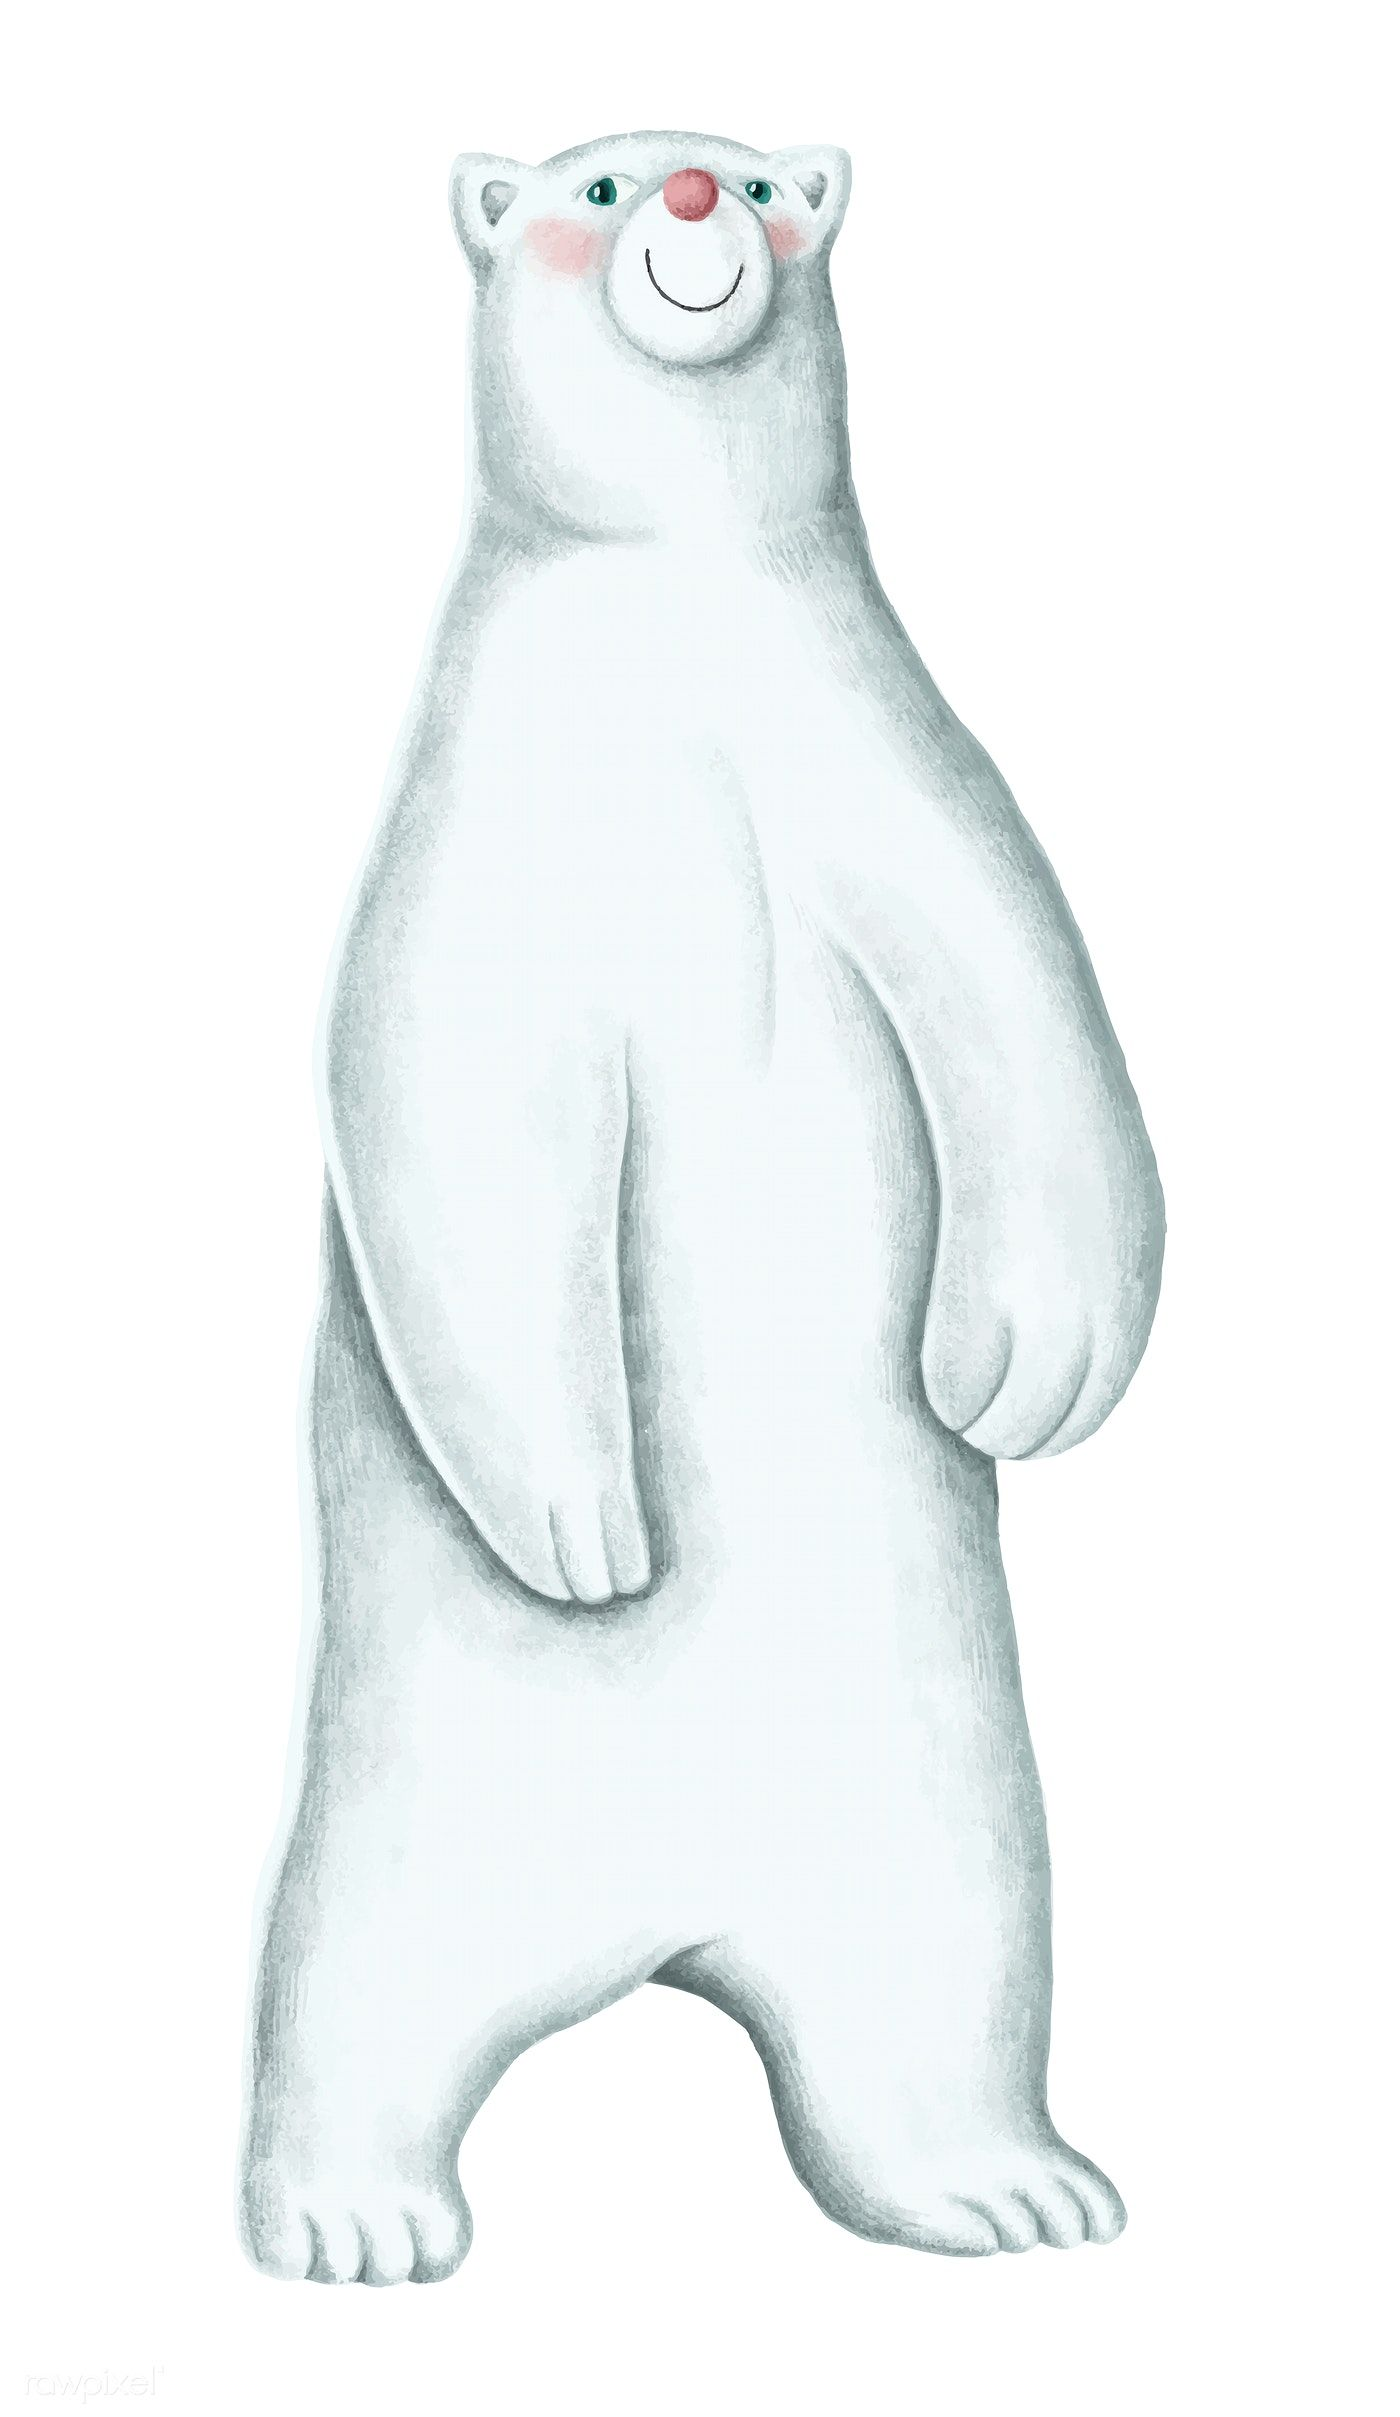 Hand Drawn Standing White Polar Bear Free Image By